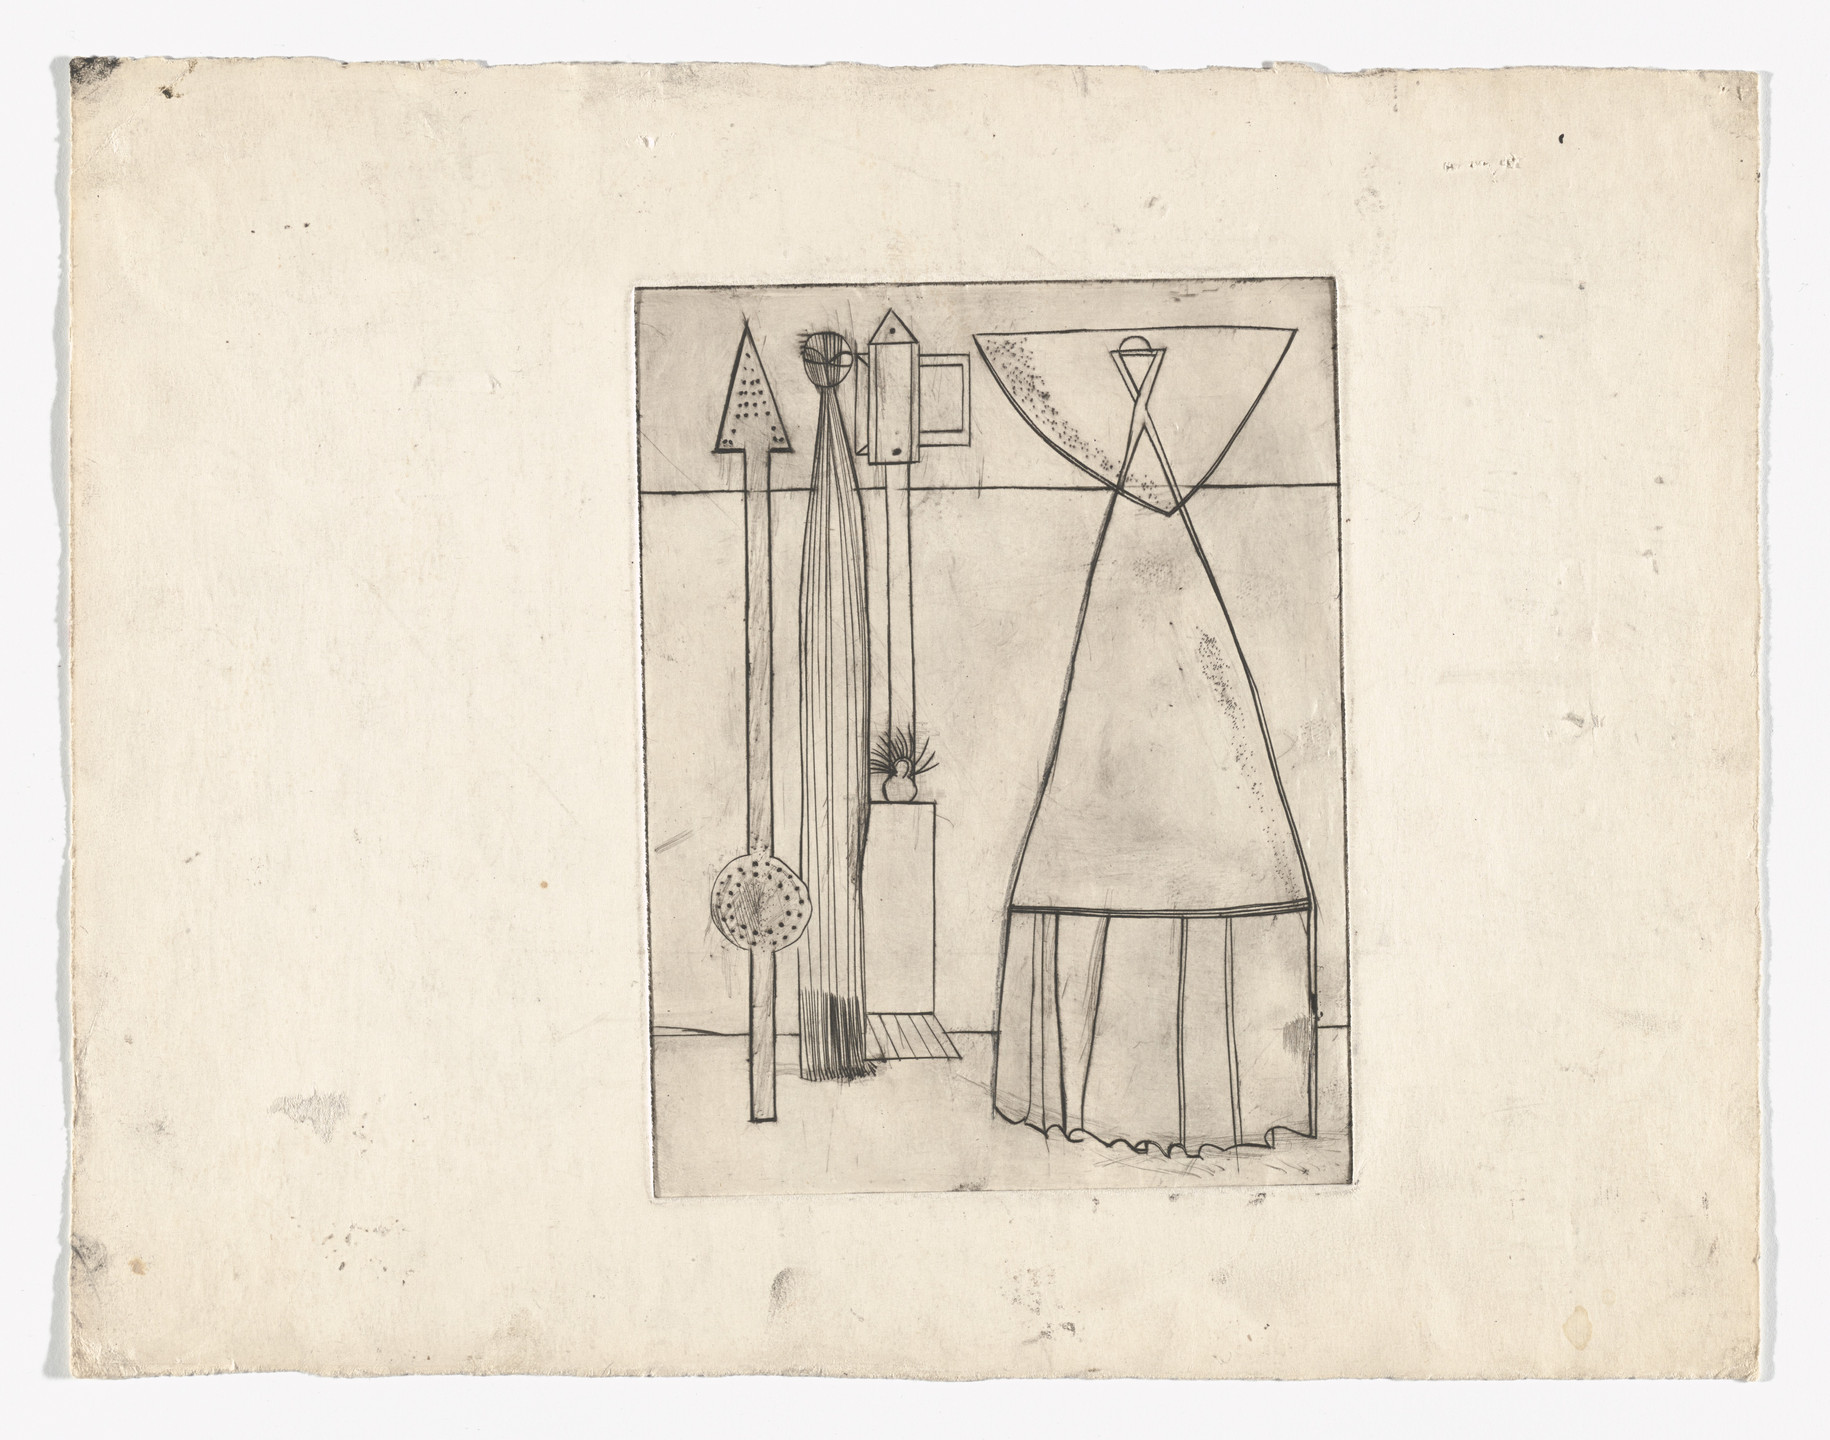 Louise Bourgeois. Famille. 1947-1949